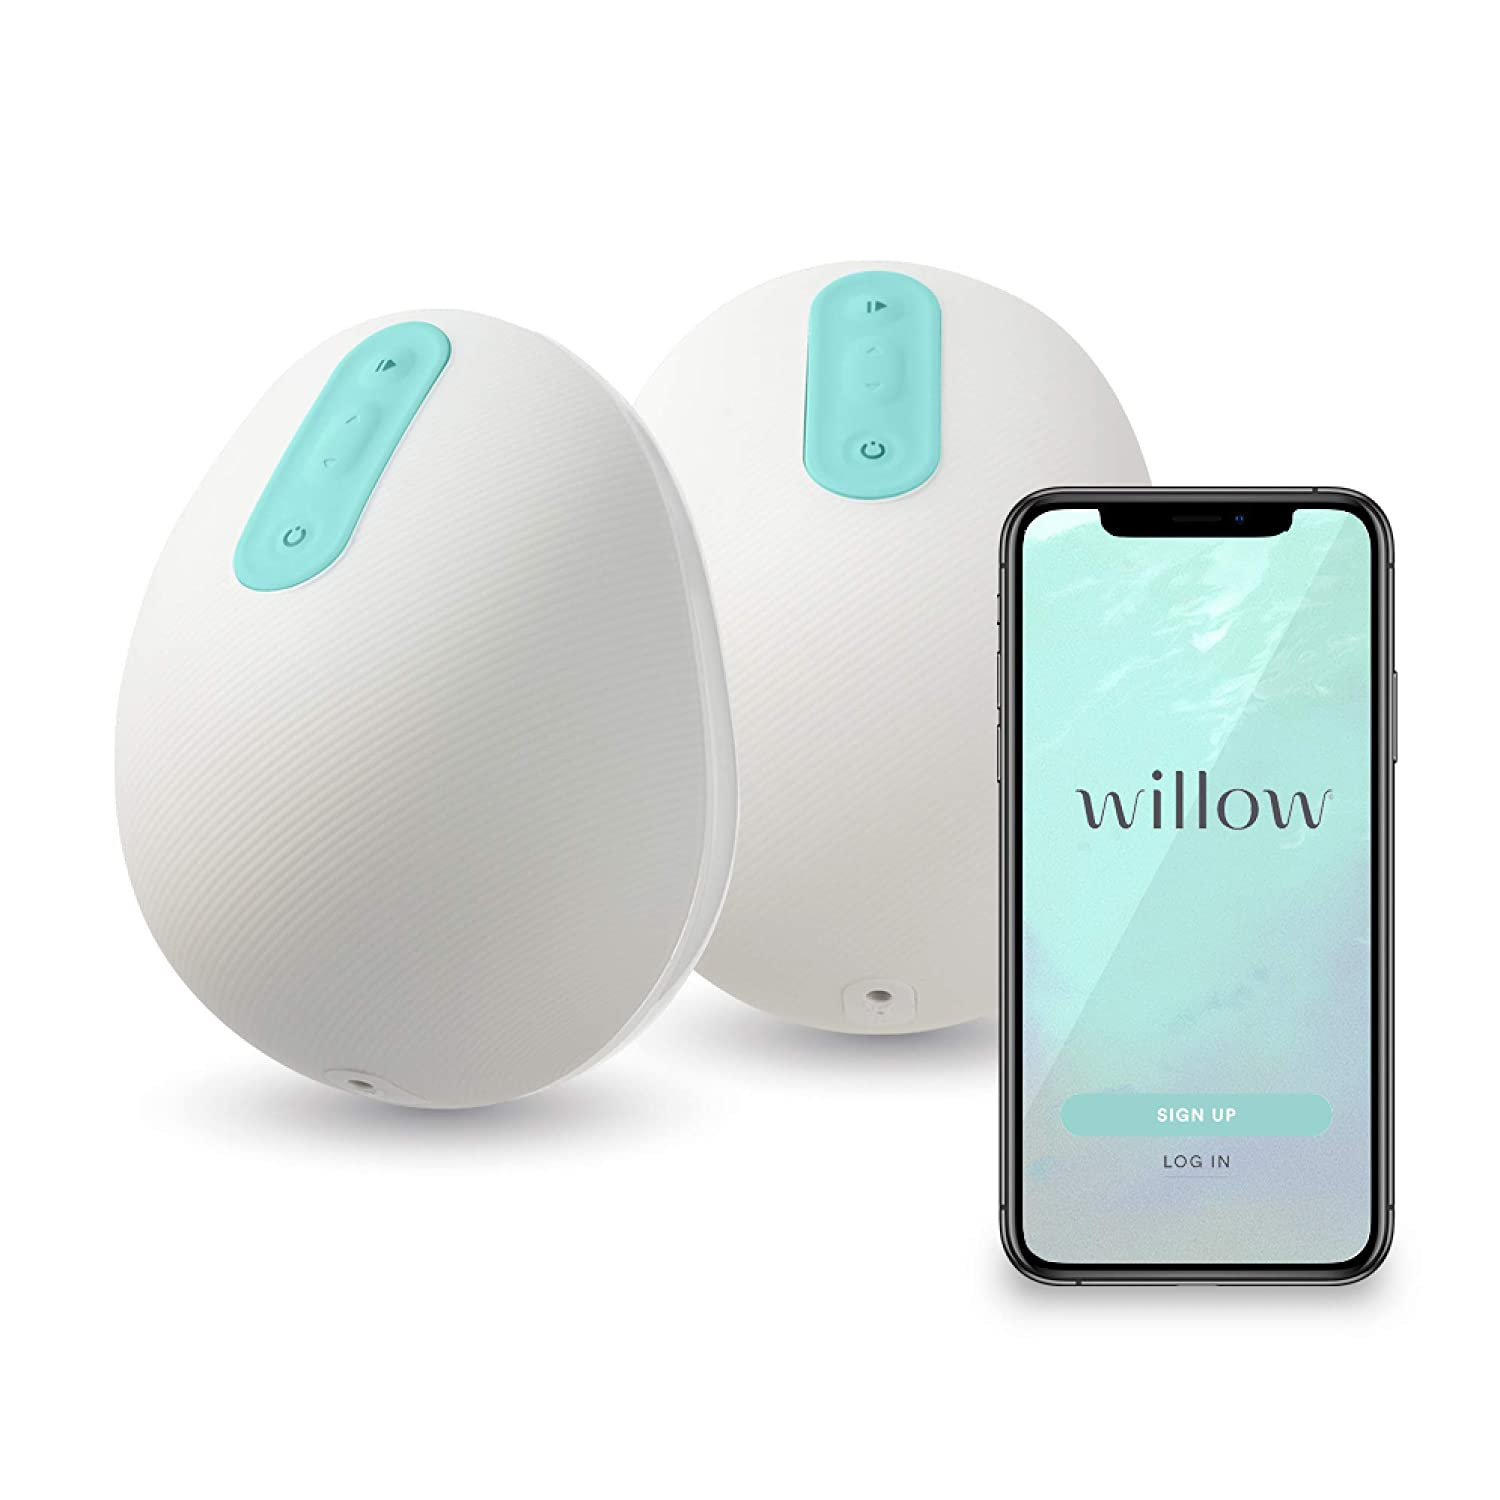 Willow Wearable Double Electric Breast Pump with App – The First and Only Spill-Proof Breast Pump That fits in Your Bra - Portable & Quiet (24mm)